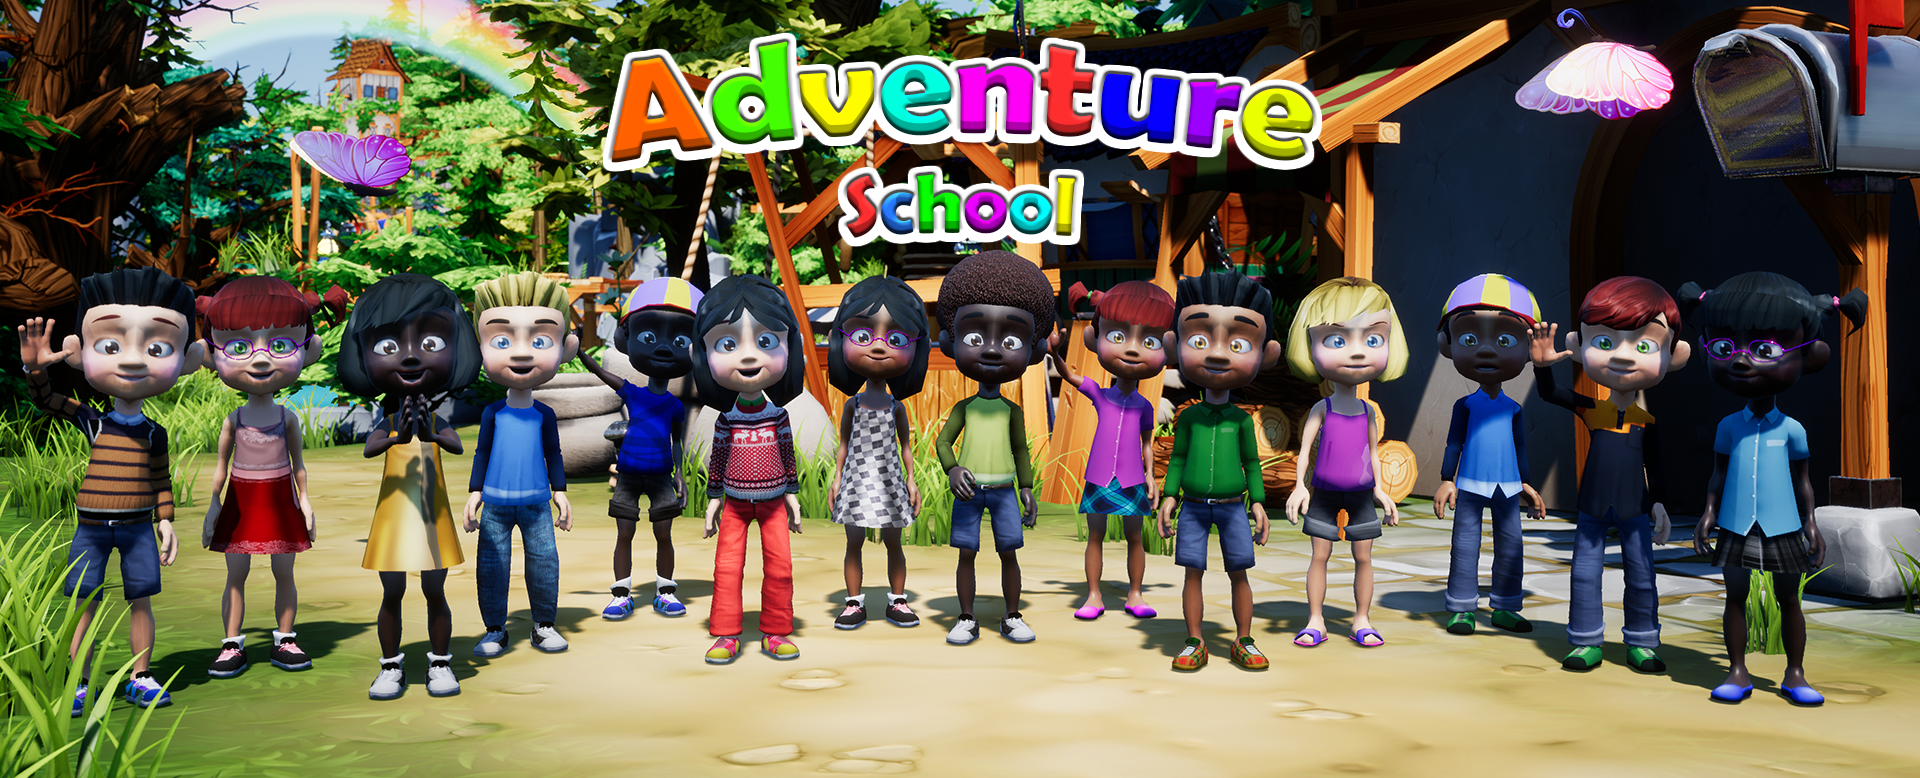 Adventure School - Demo